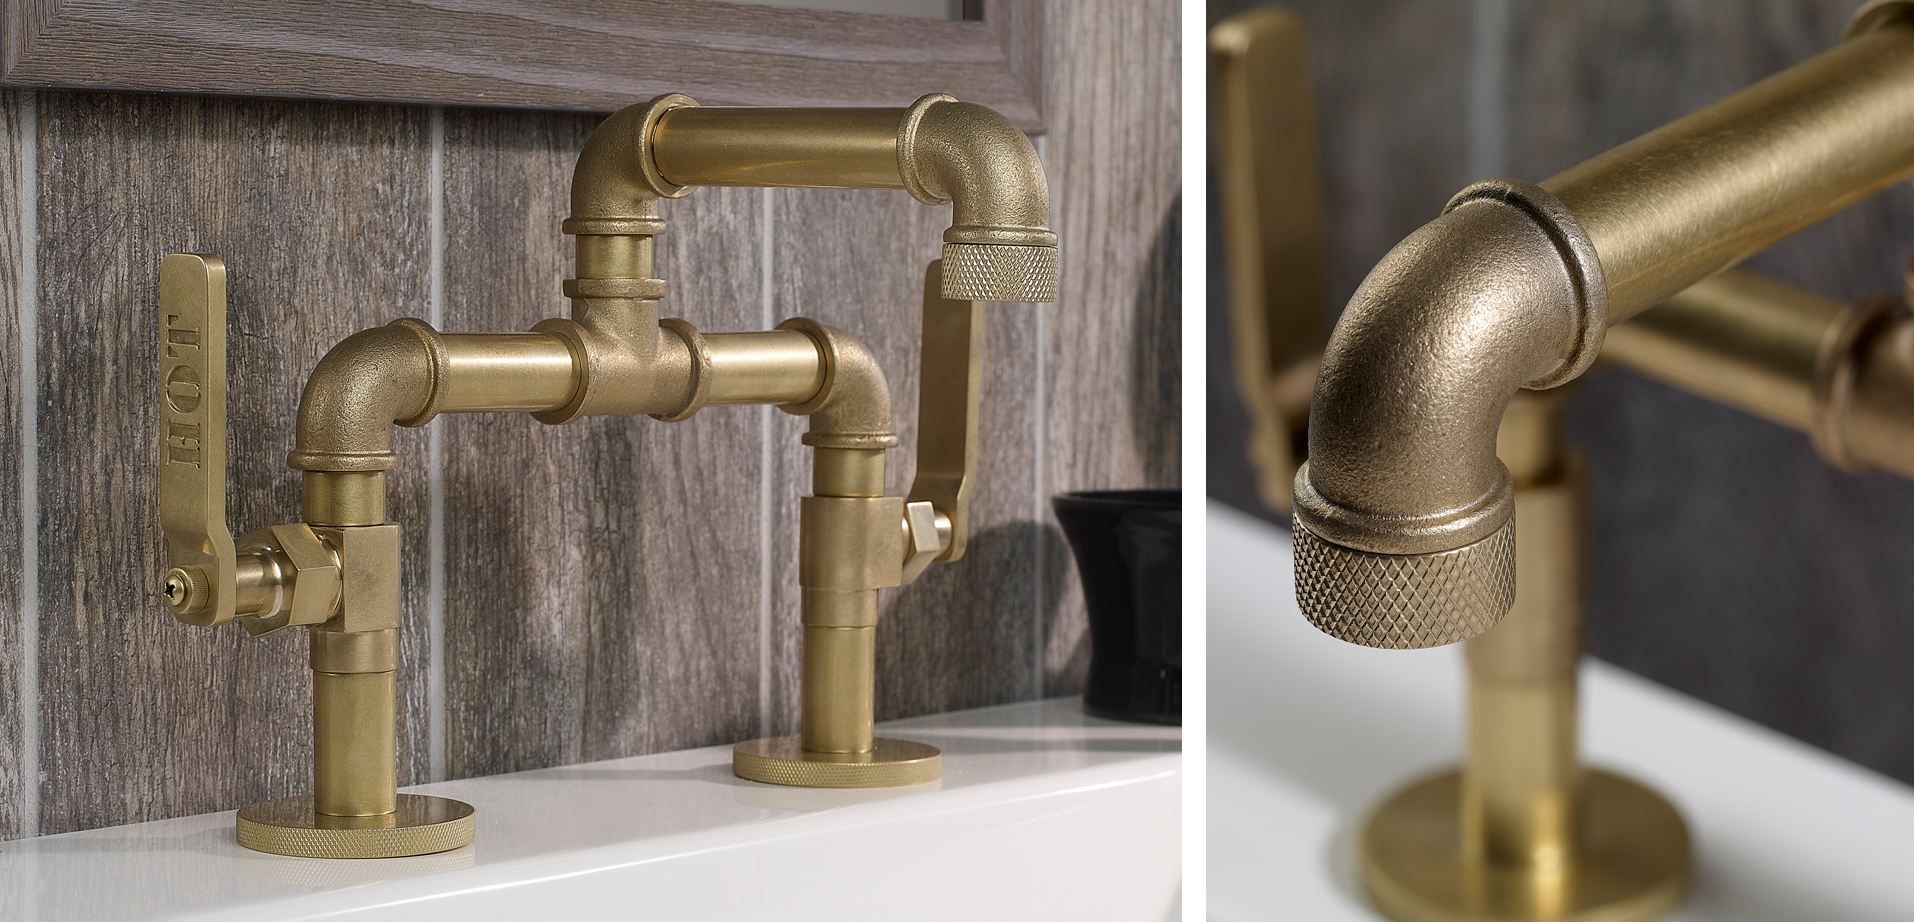 Watermark Designs Wins Gold Designation From Brooklyn Chamber of ... - Watermark Designs' Elan Vital, is the latest collection that reflects the  iconic Brooklyn inspired theme. This collection is fully customizable and  ...